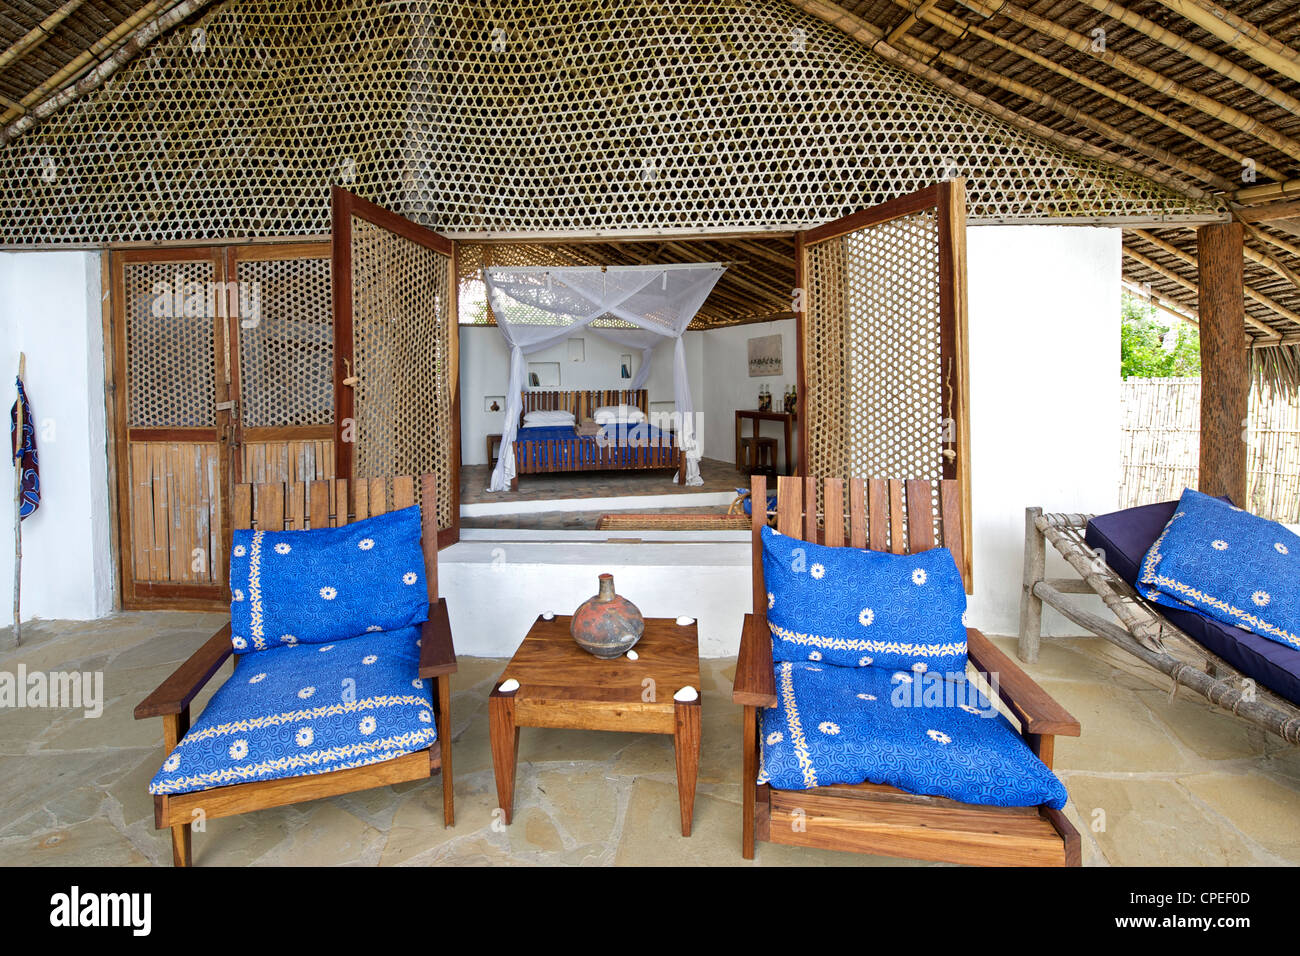 Guludo beach lodge in the Quirimbas National Park in northern Mozambique. - Stock Image